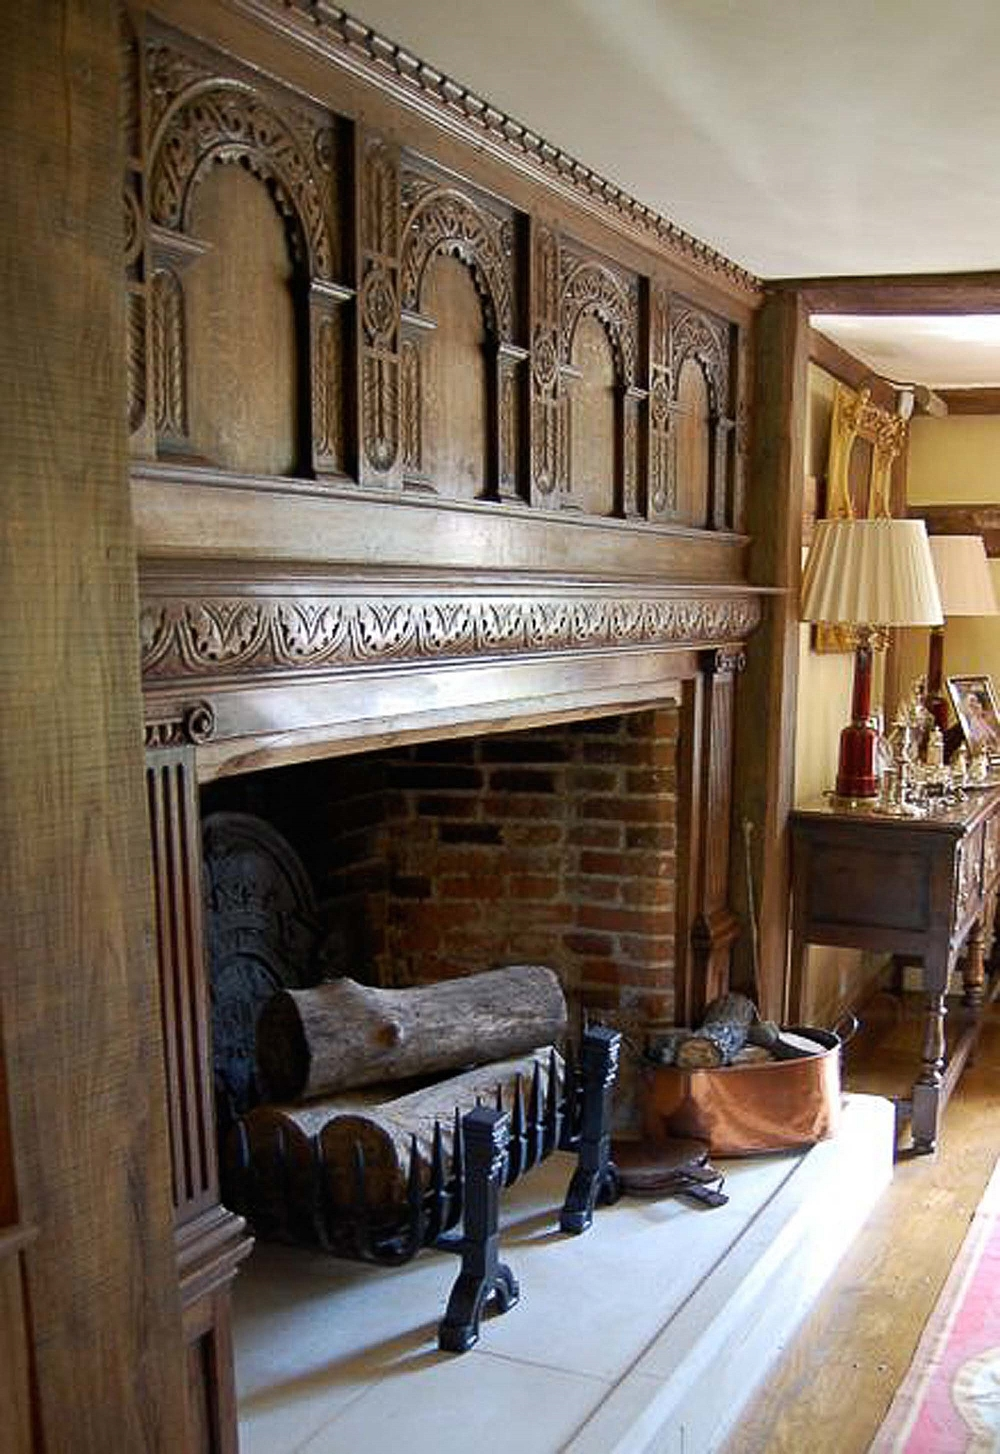 16th and 17th century style oak panlled fireplace with highley decorative carved arches